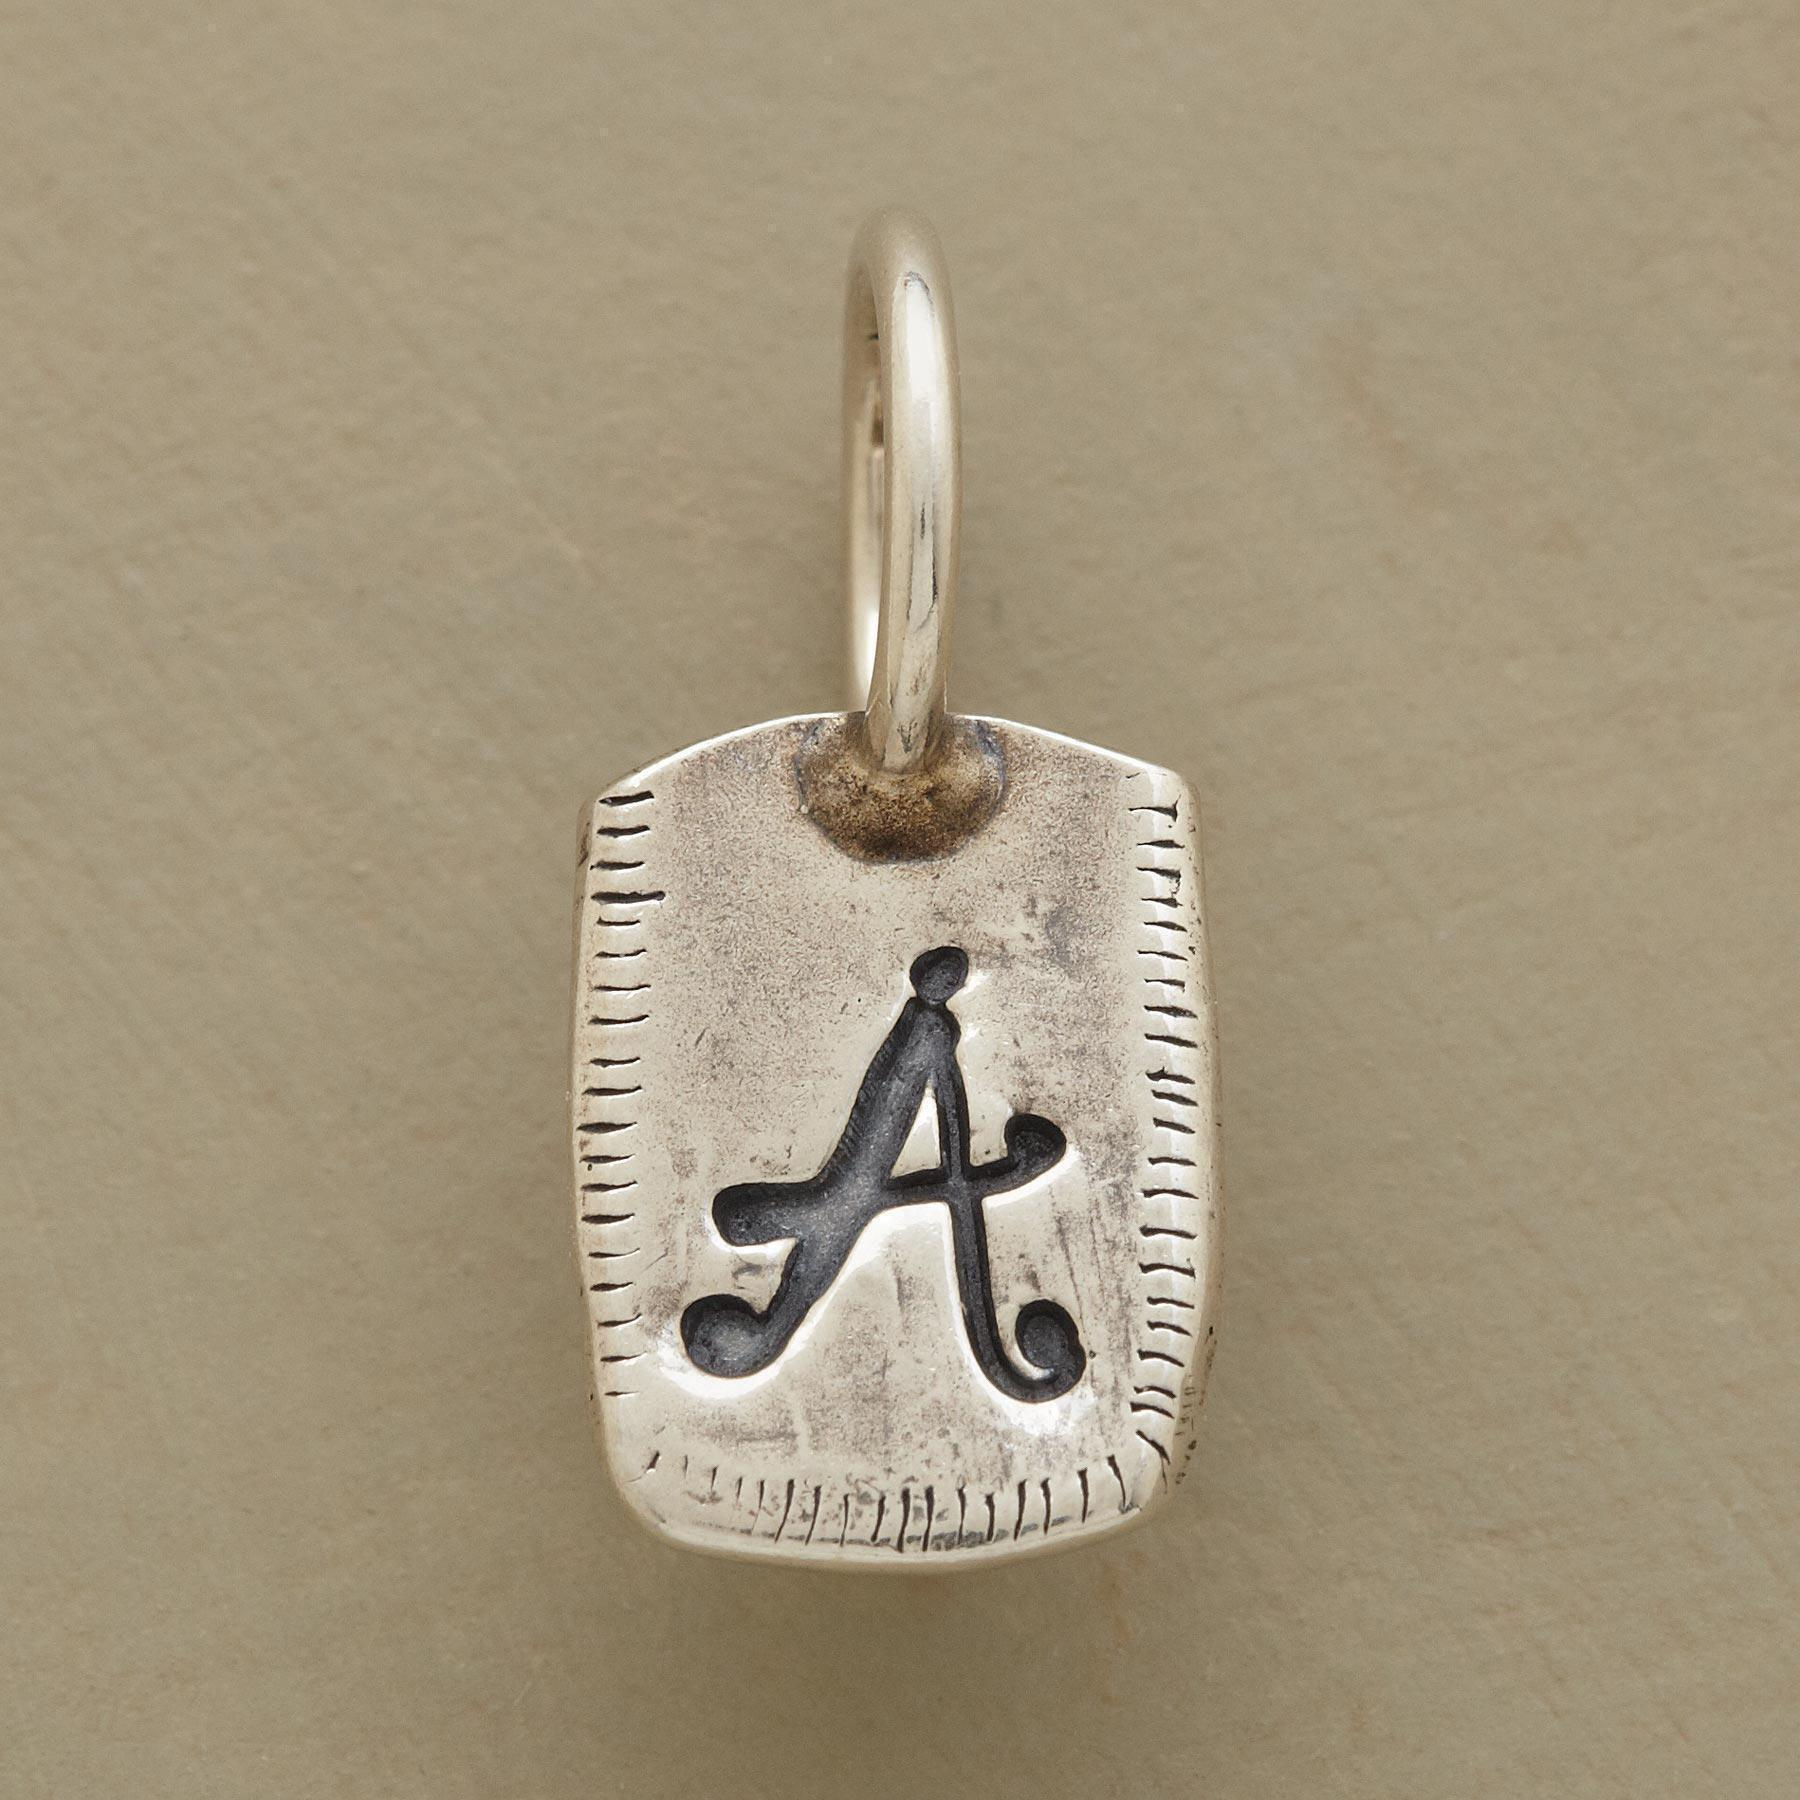 SILVER PERSONALIZED INITIAL CHARM: View 1